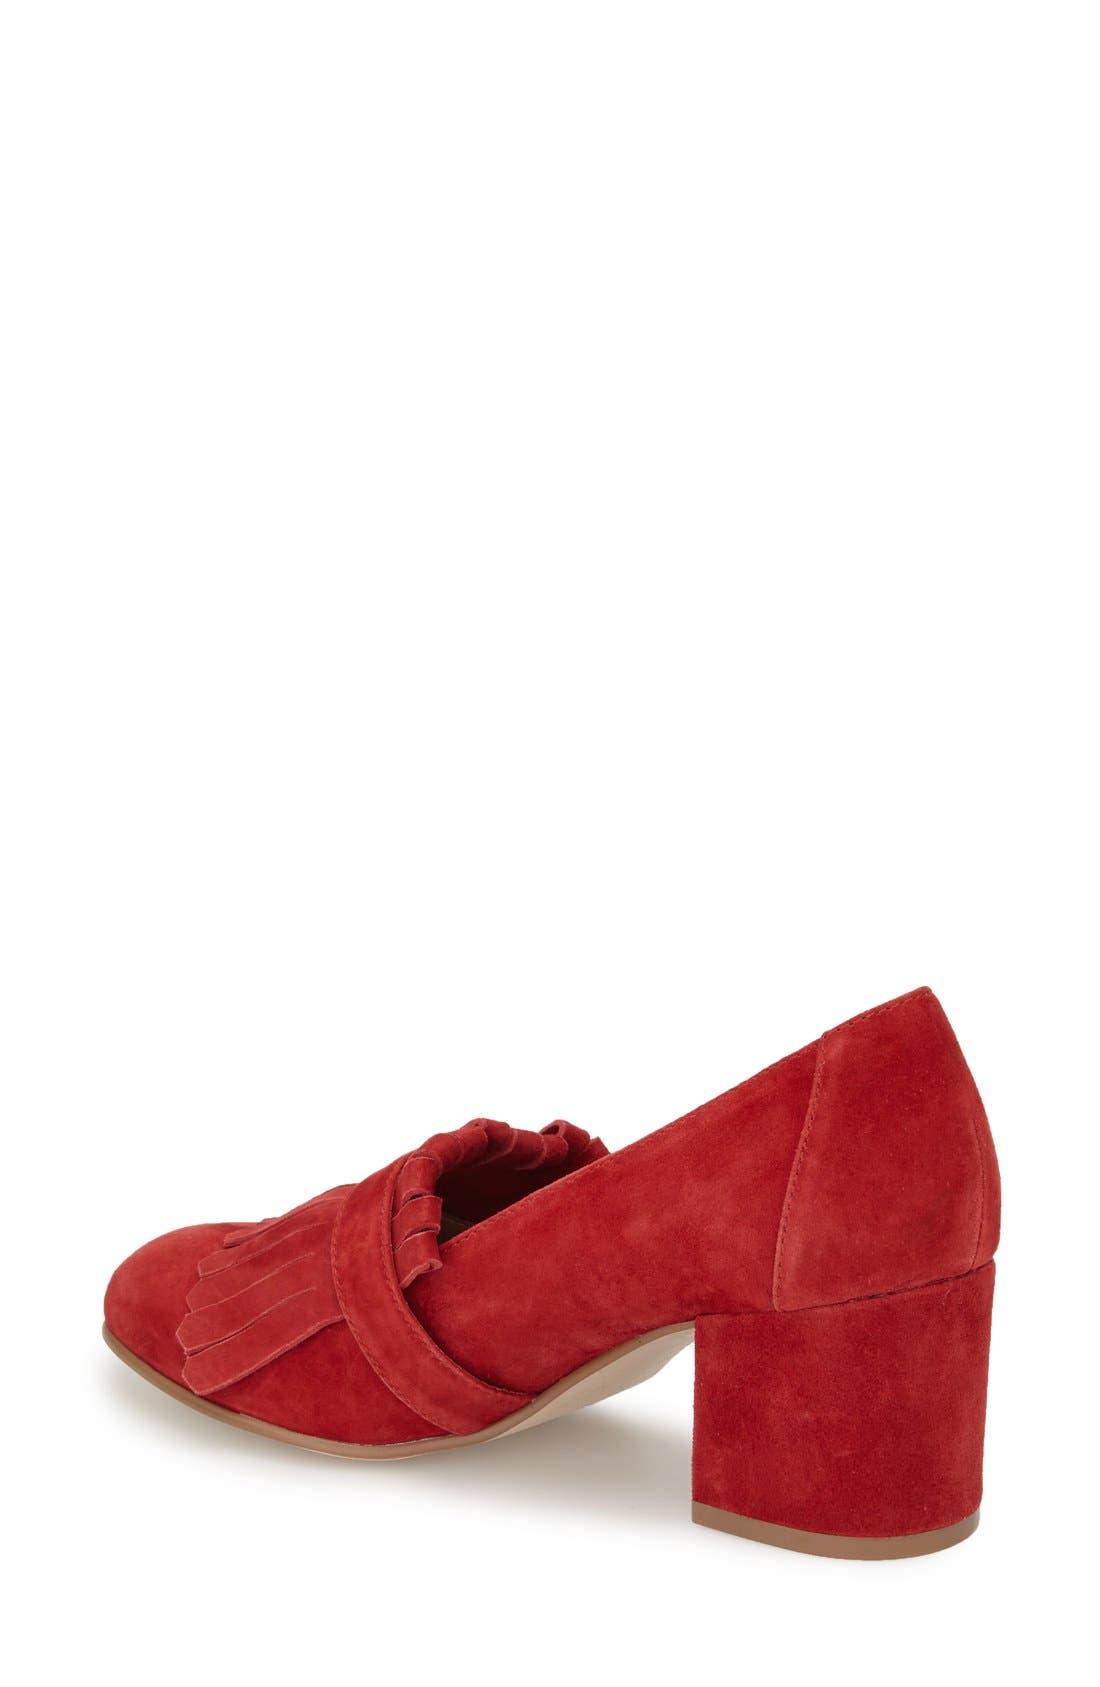 'Kate' Loafer Pumps,                             Alternate thumbnail 2, color,                             Red Suede